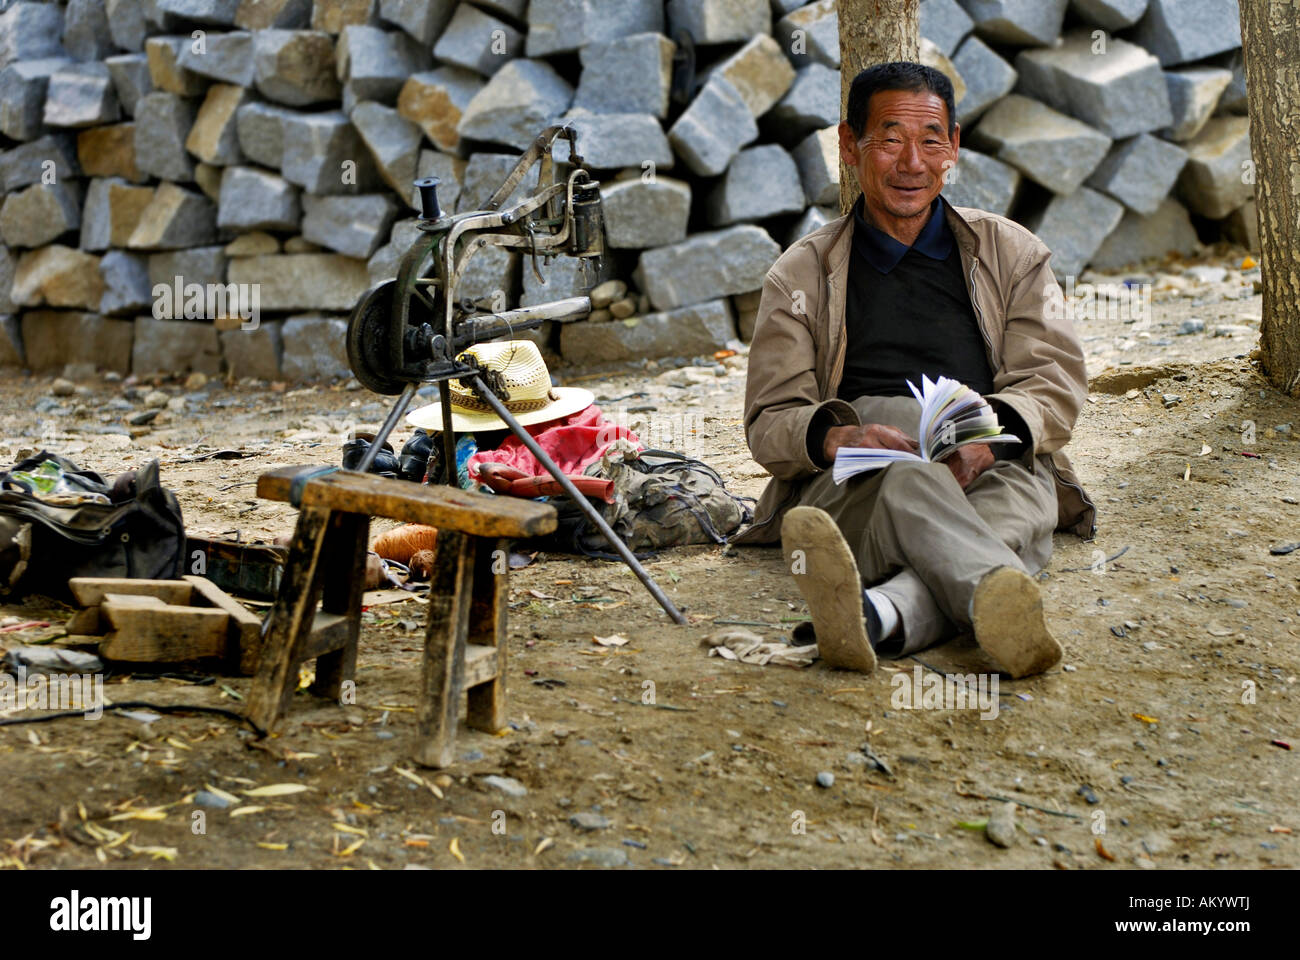 Tibetan with archaic sewing machine, Samye near Lhasa, Tibet, Asia - Stock Image